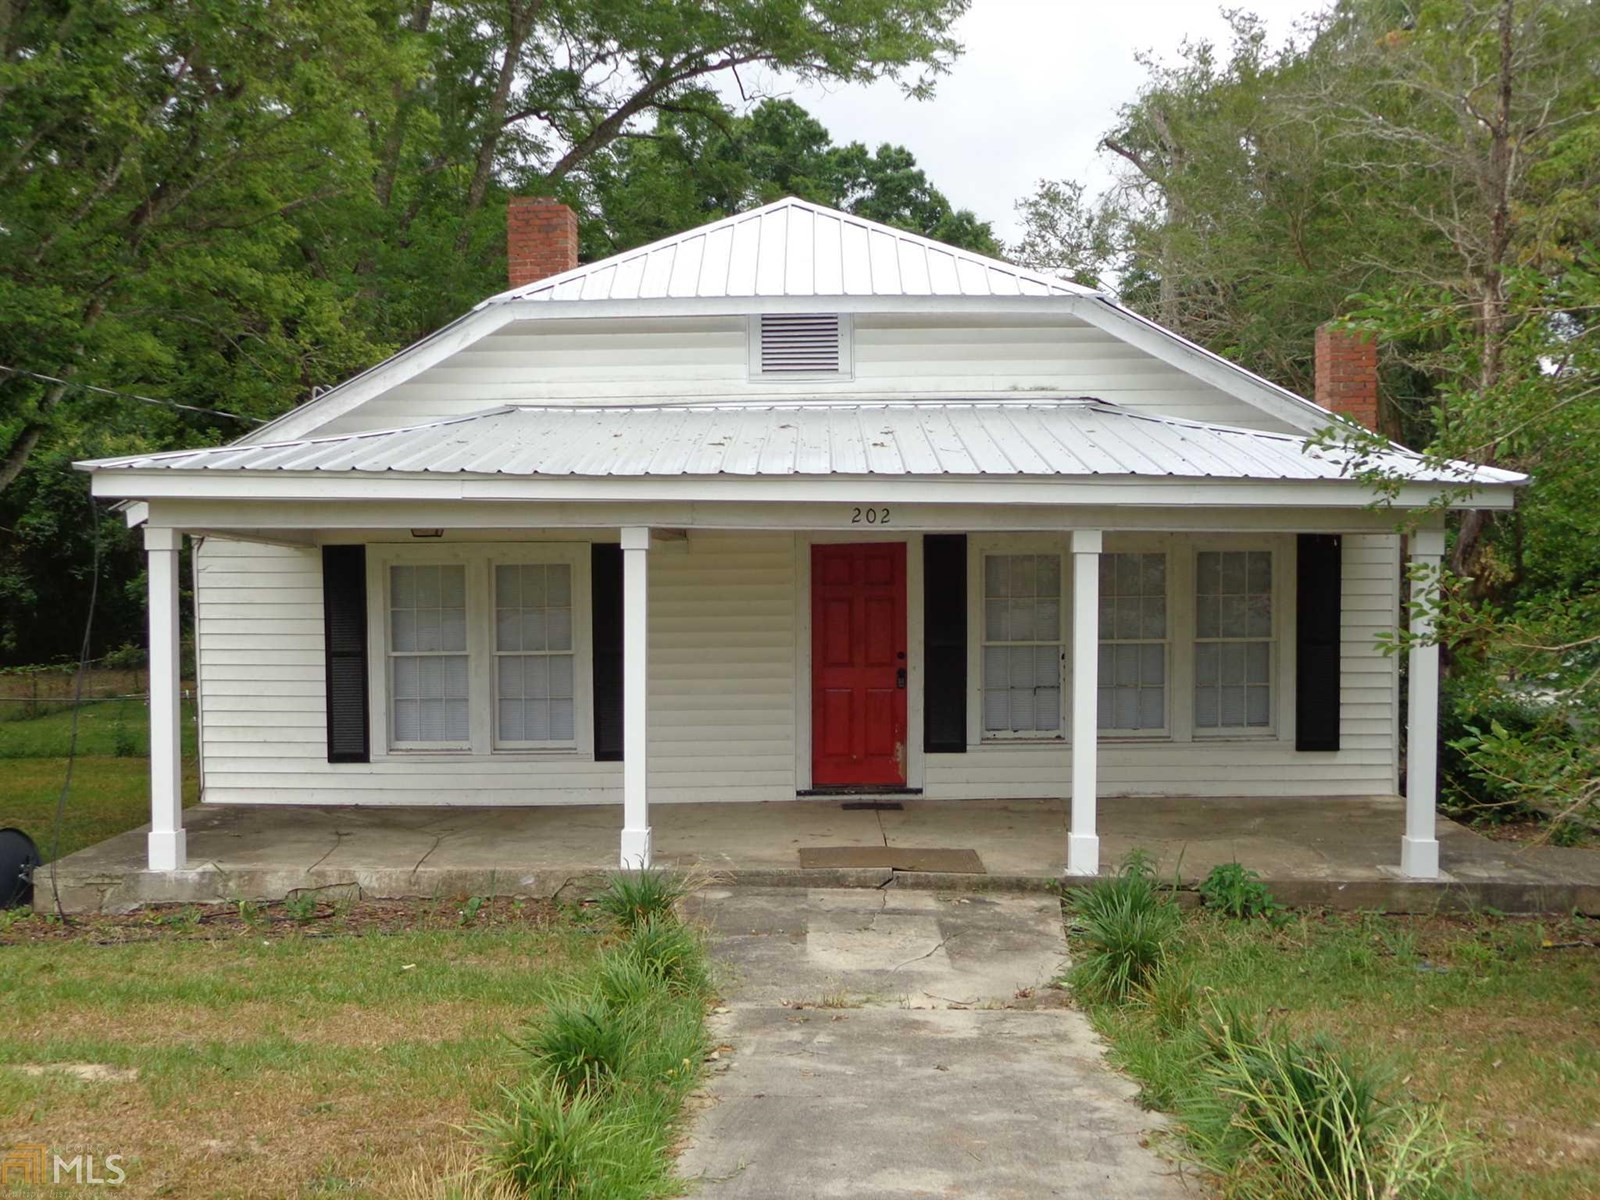 2 BR, 1.5 BA Historic Home in Sylvania, GA